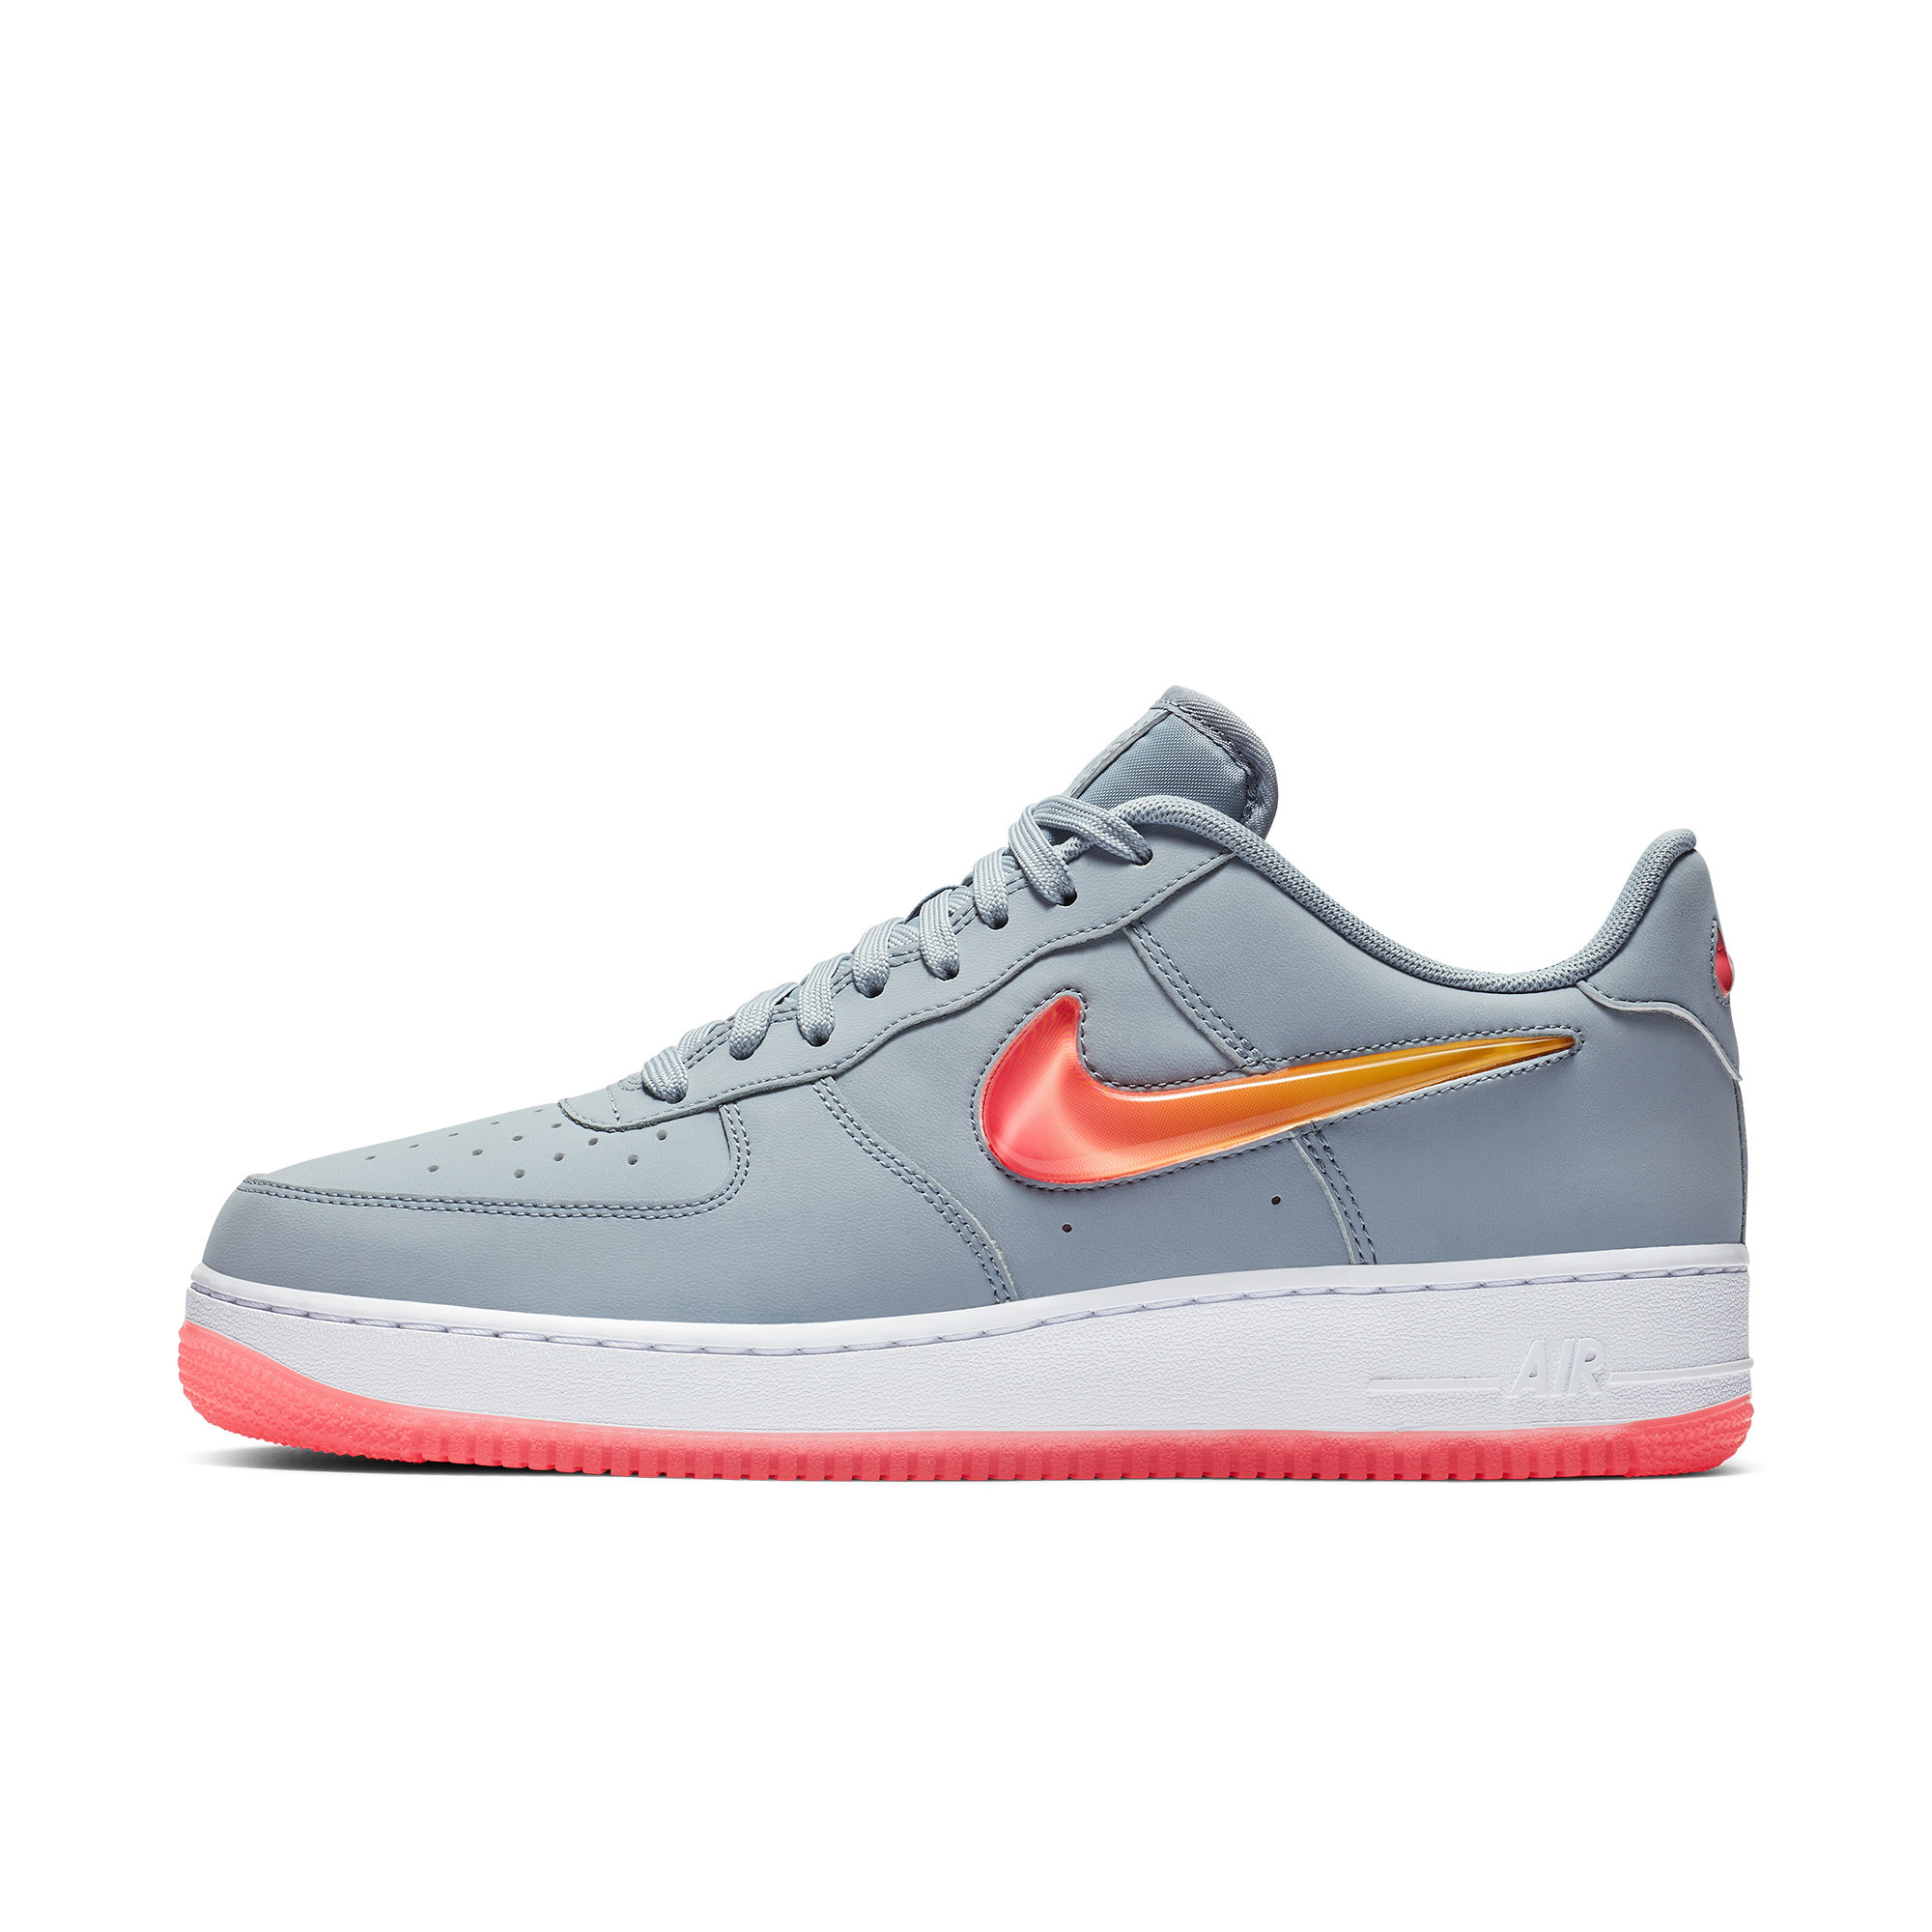 NIKE AIR FORCE 1 39 07 Men 39 s Skateboarding shoes Outdoor Comortable Non slip Casual Shoes AT4143 in Skateboarding from Sports amp Entertainment